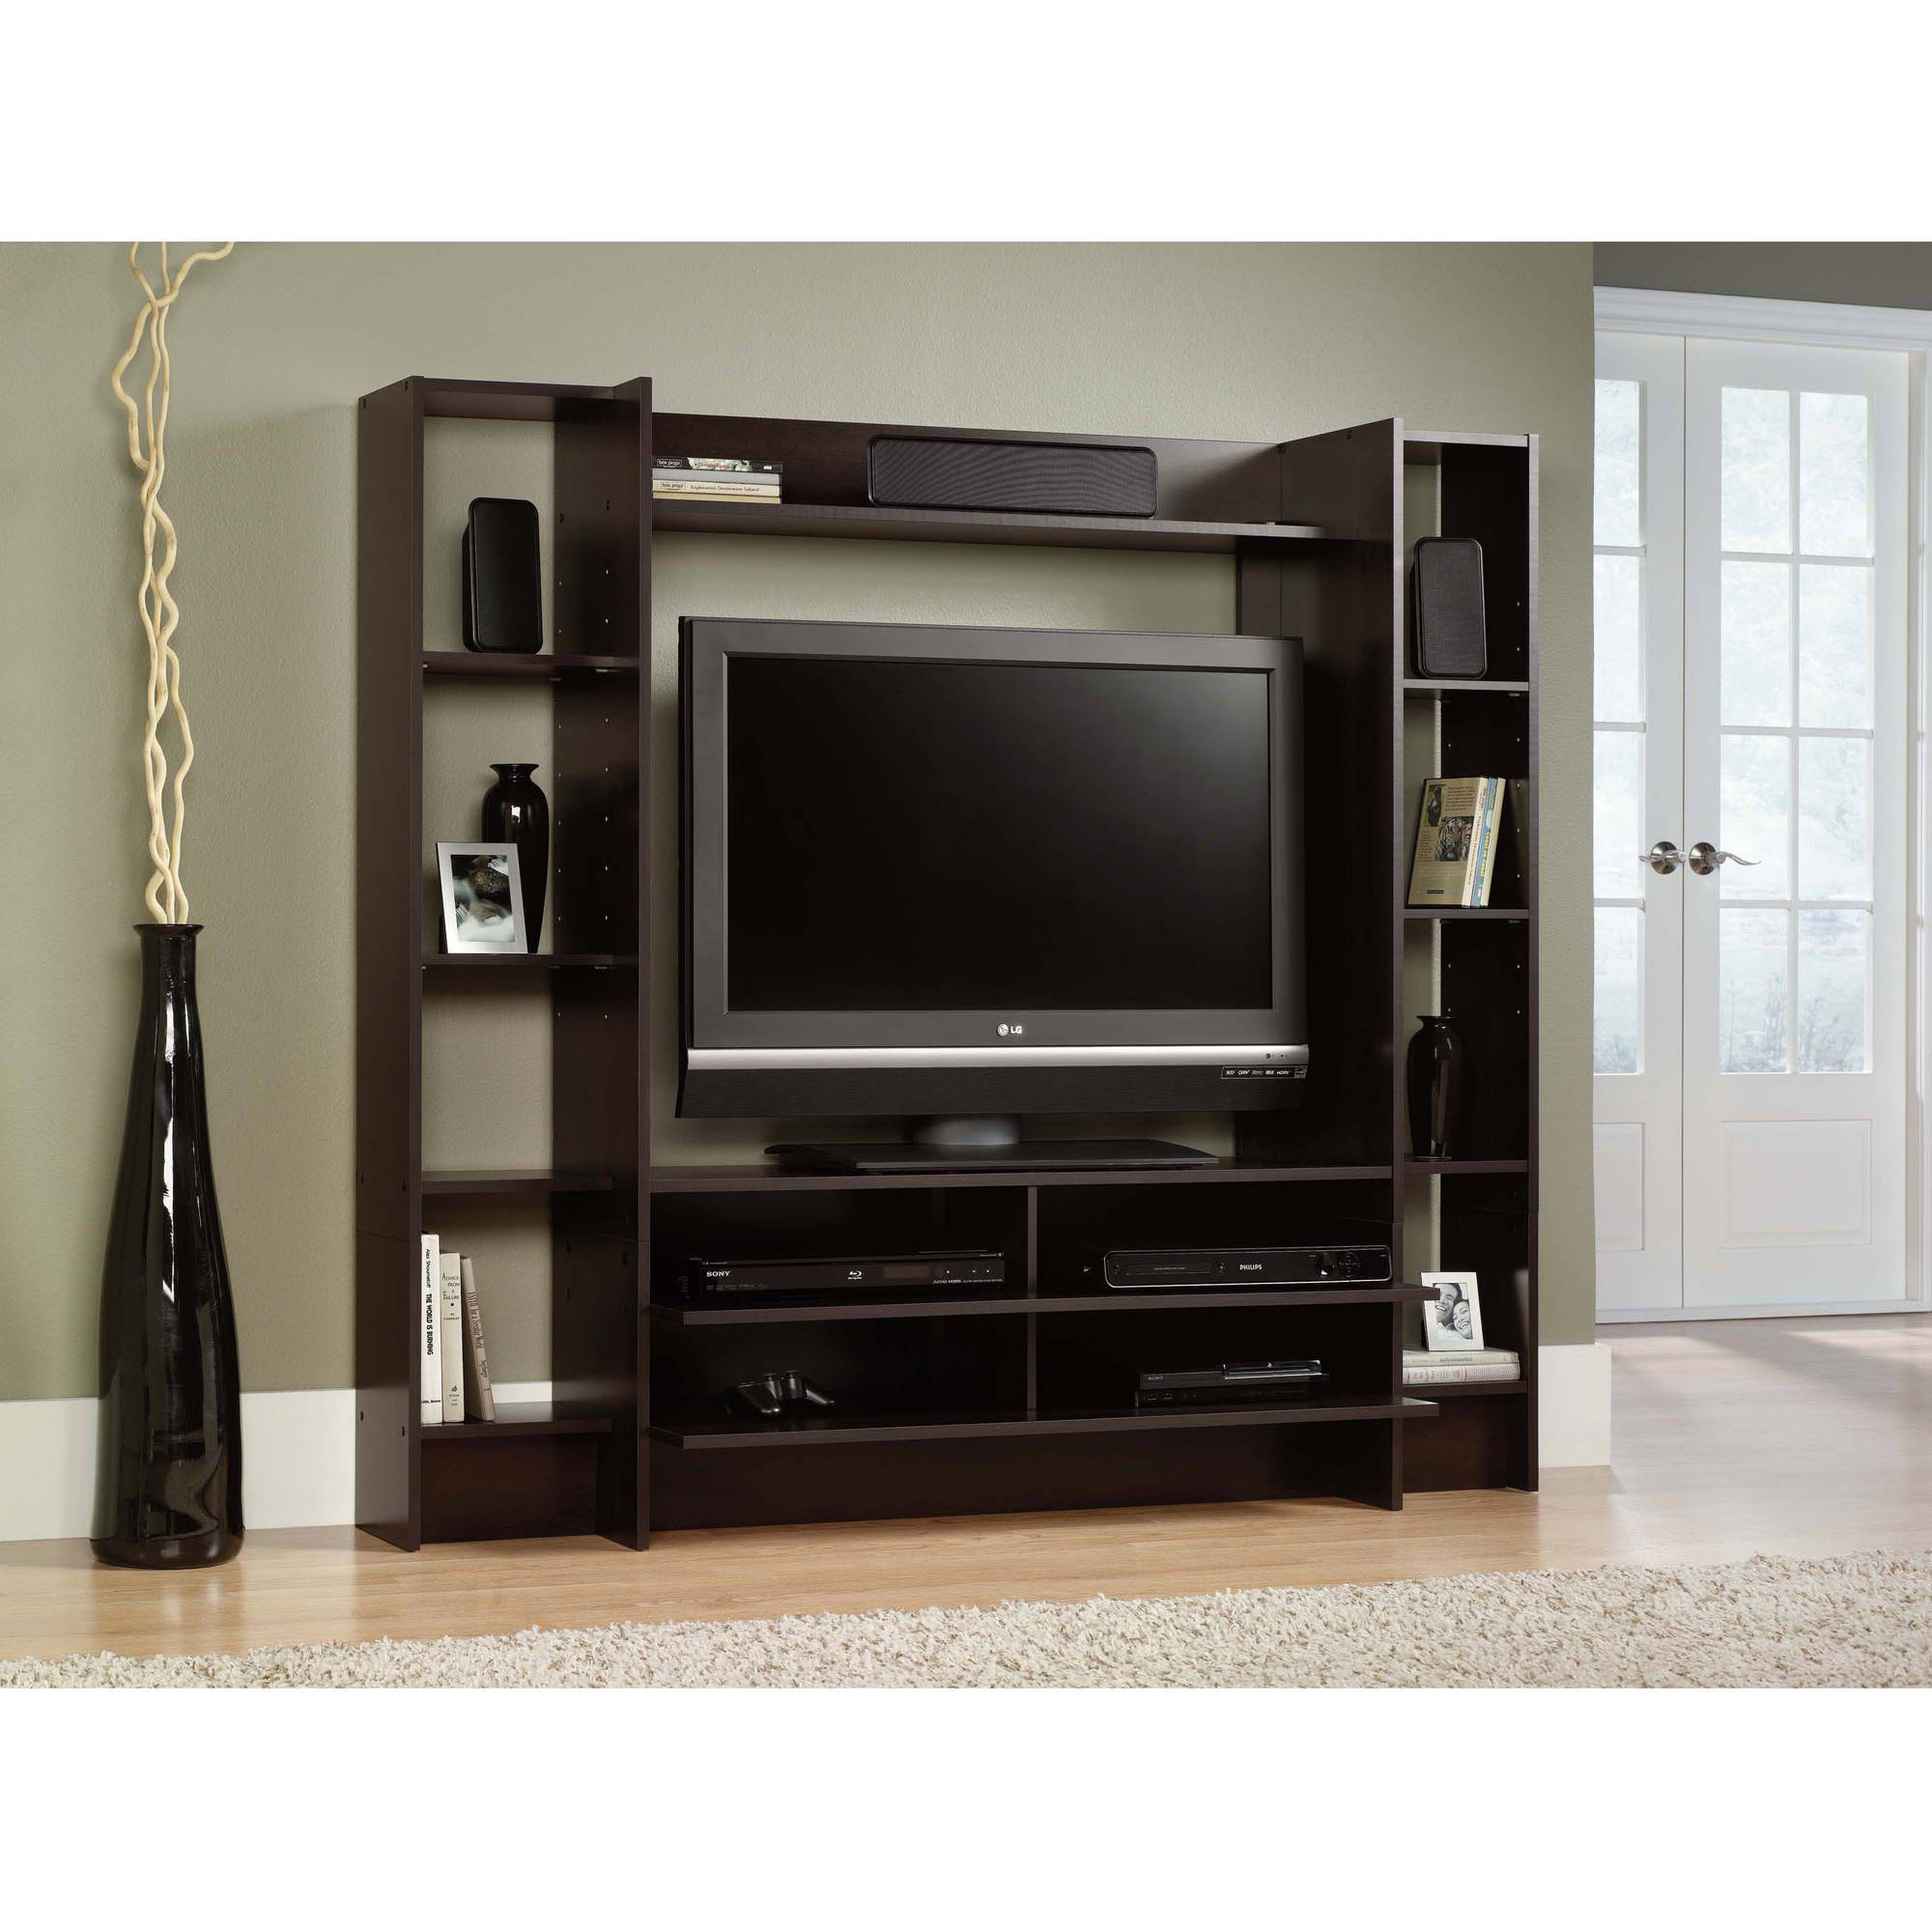 Modern Furniture Tv Stands tv stands & entertainment centers - walmart